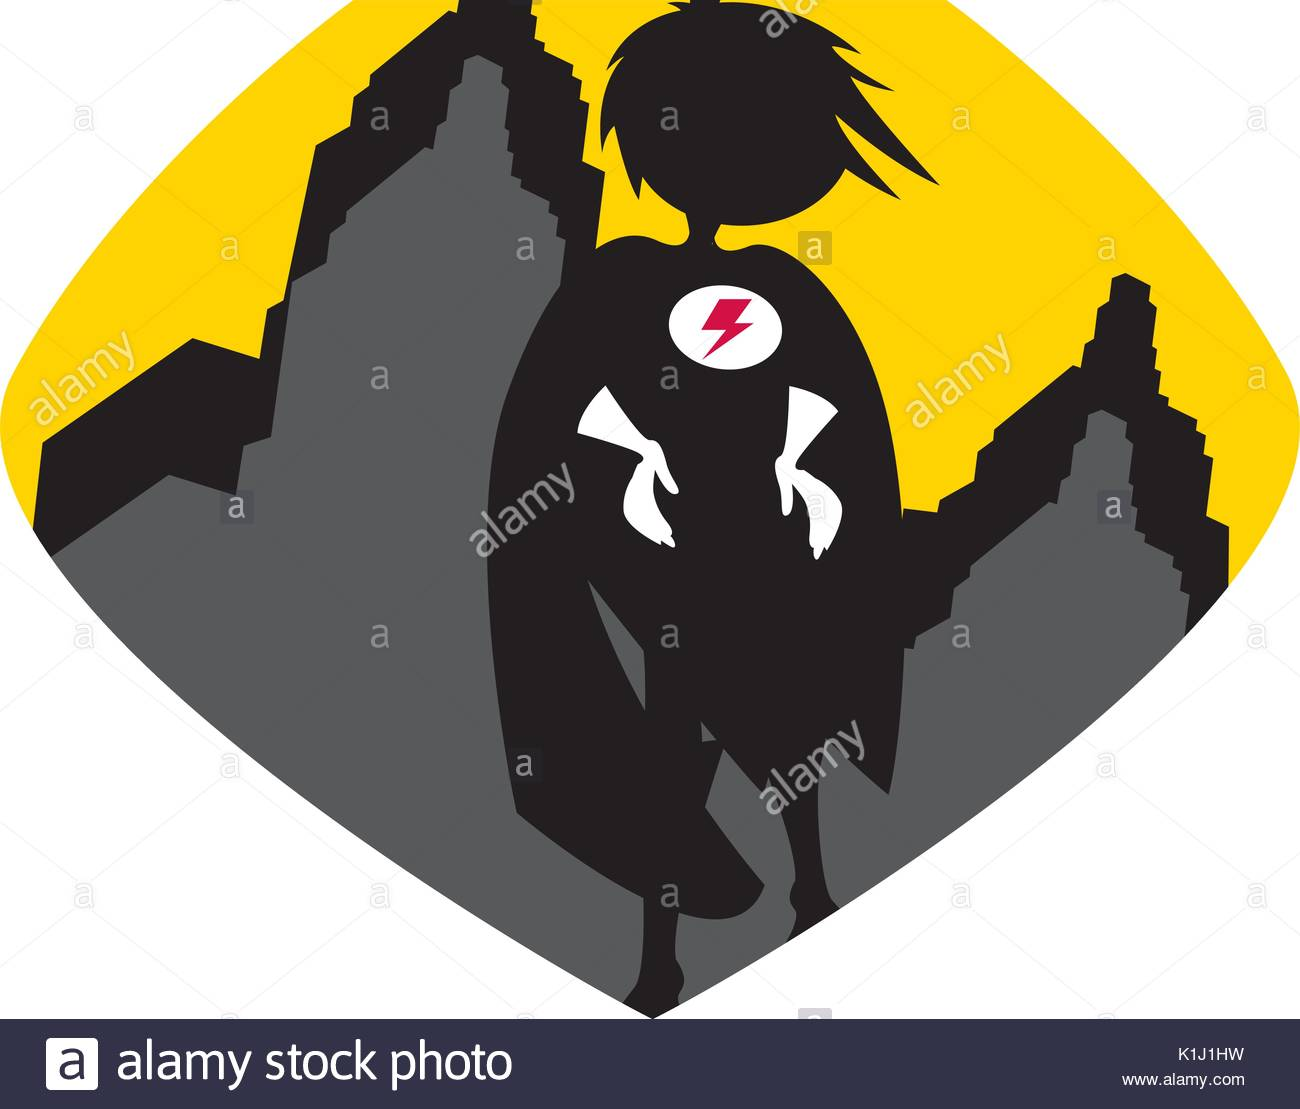 1300x1109 Cute Cartoon Heroic Superhero Silhouette Stock Vector Art